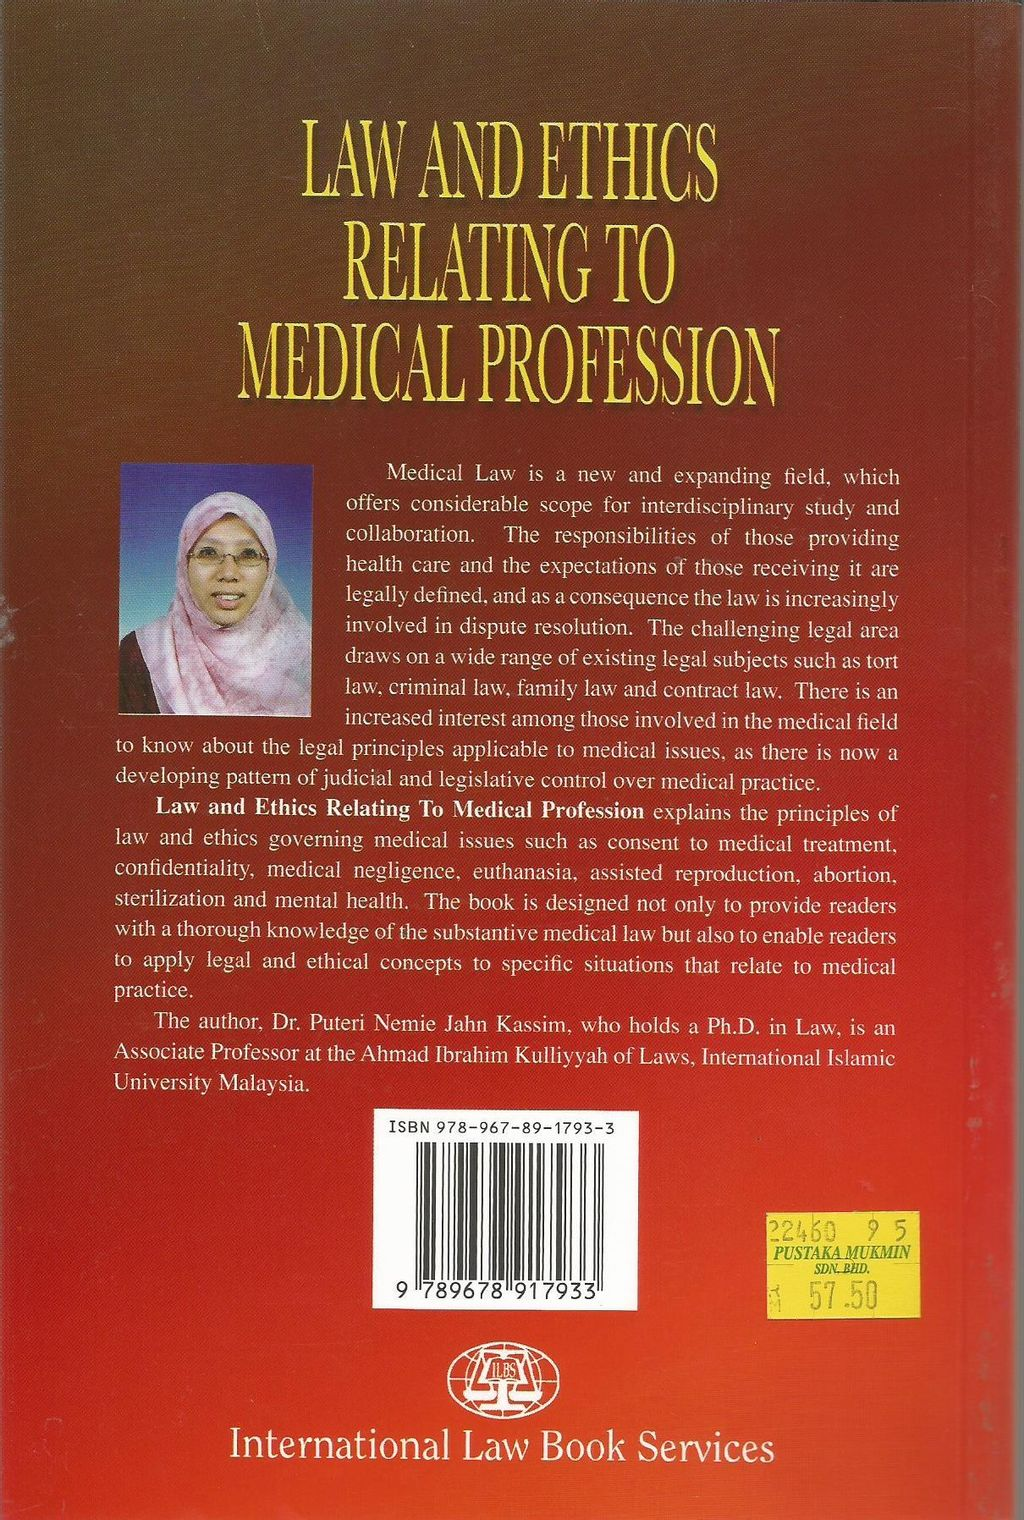 law and ethics medical rm57.5 0.60002.jpg